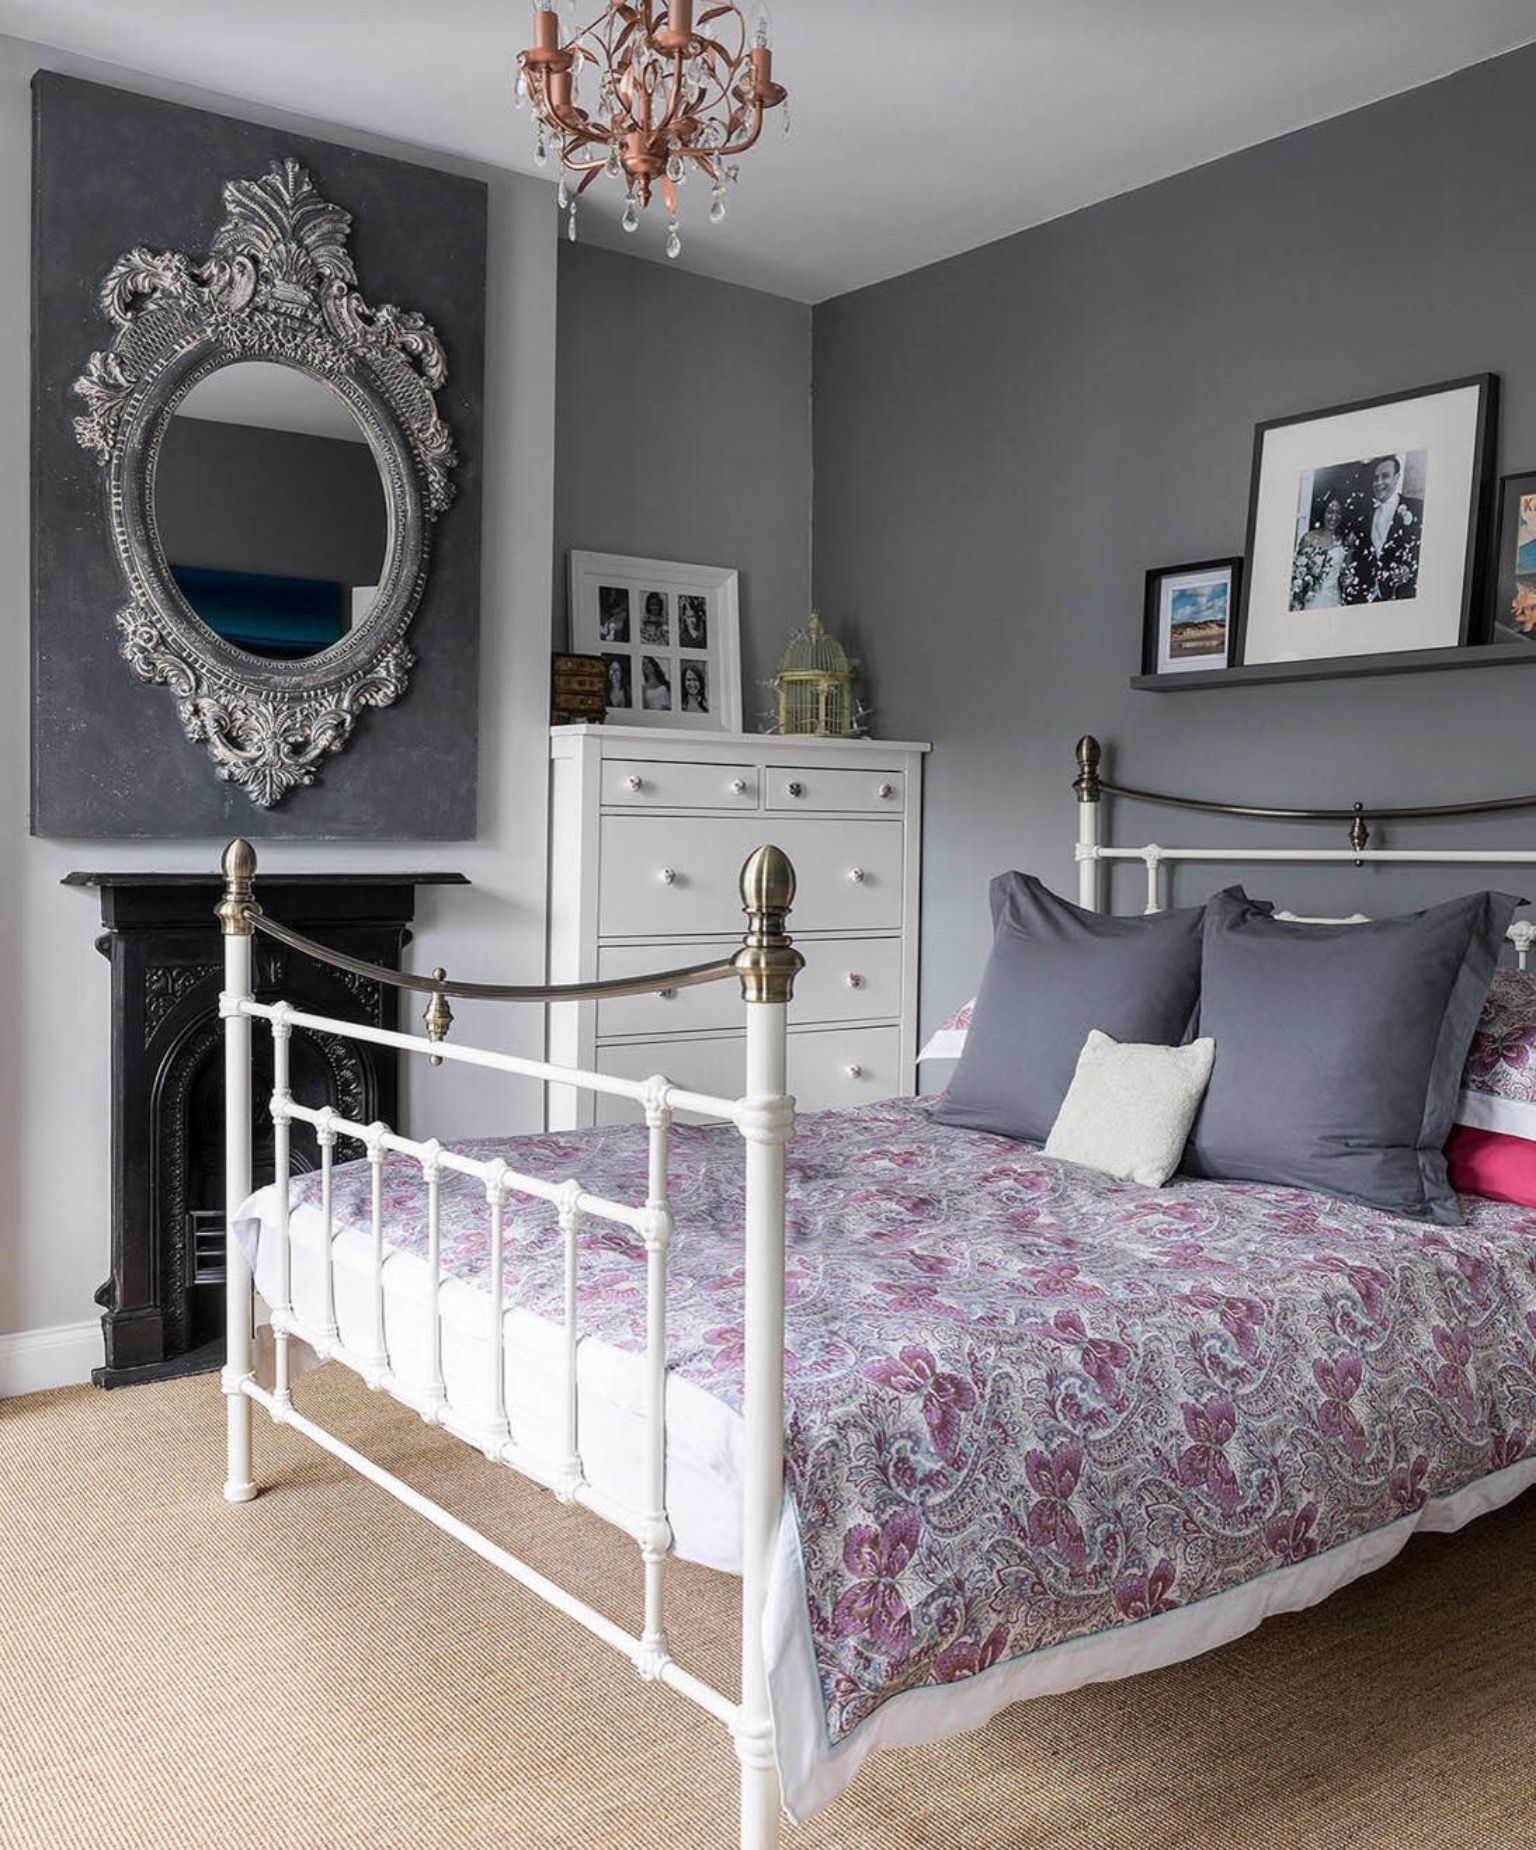 Pin by Kandice Knight on Bedrooms White metal bed, White